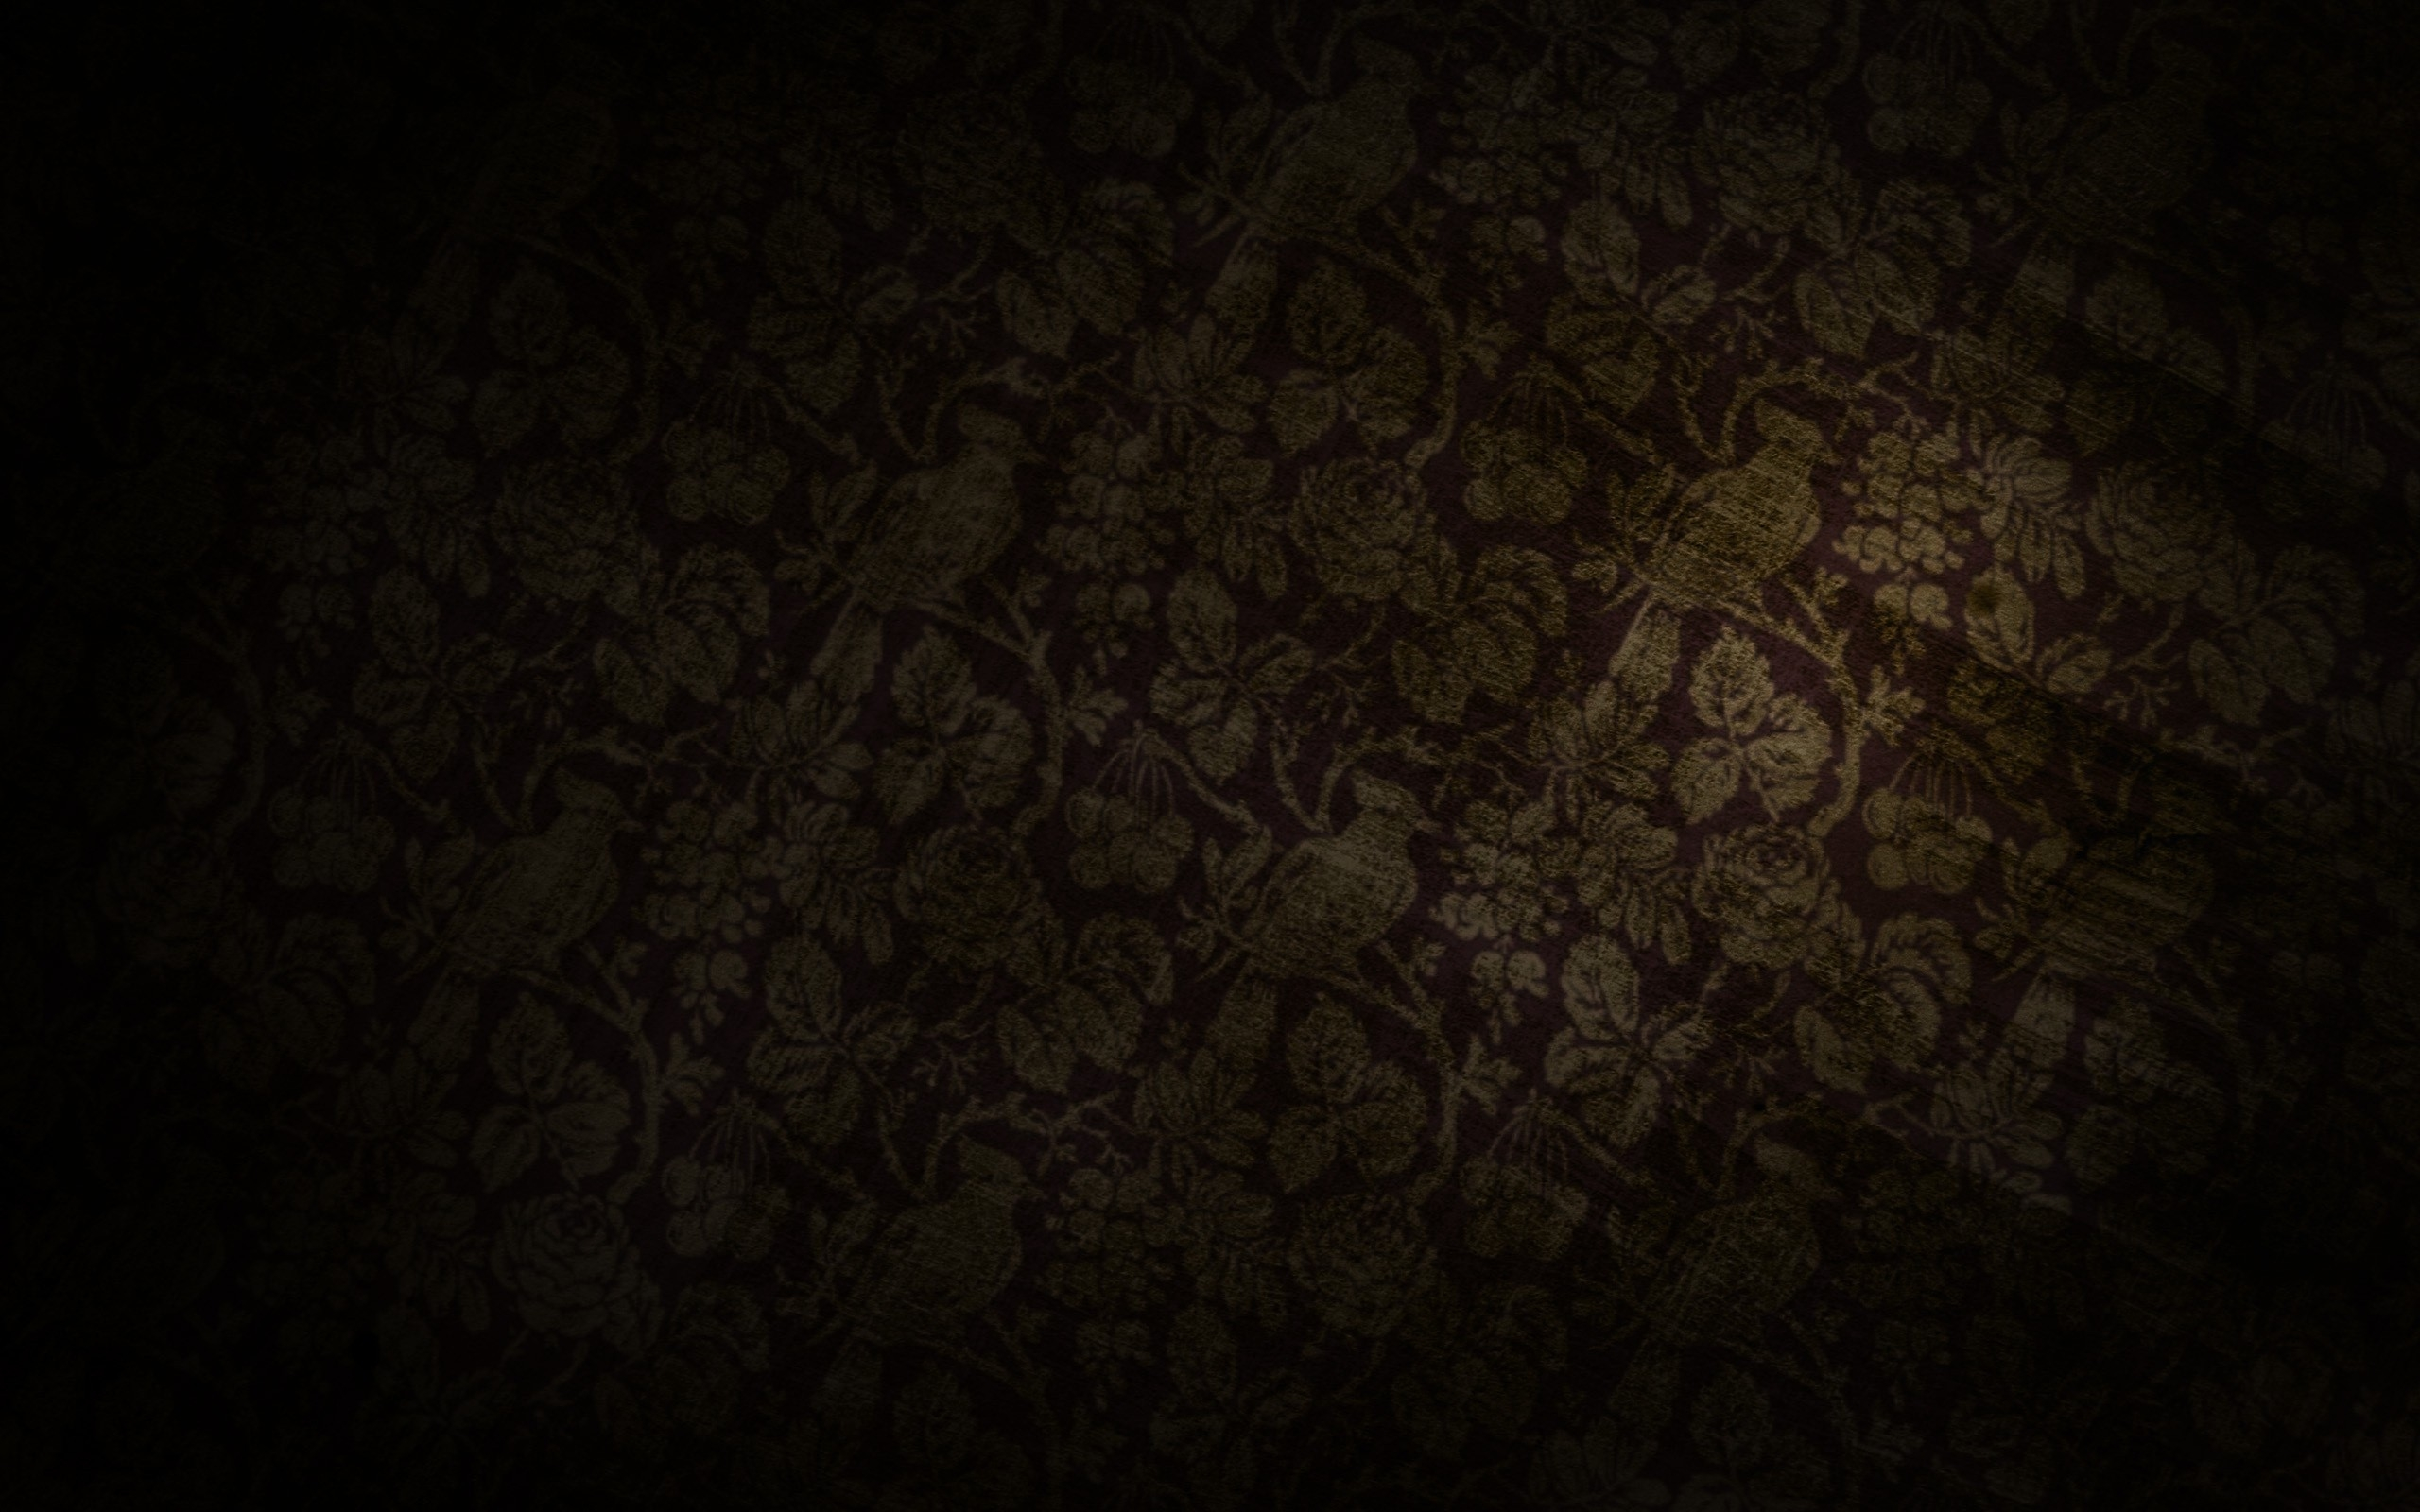 Free Download Download Wallpaper Fabric Patterns Dark Shadow Hd